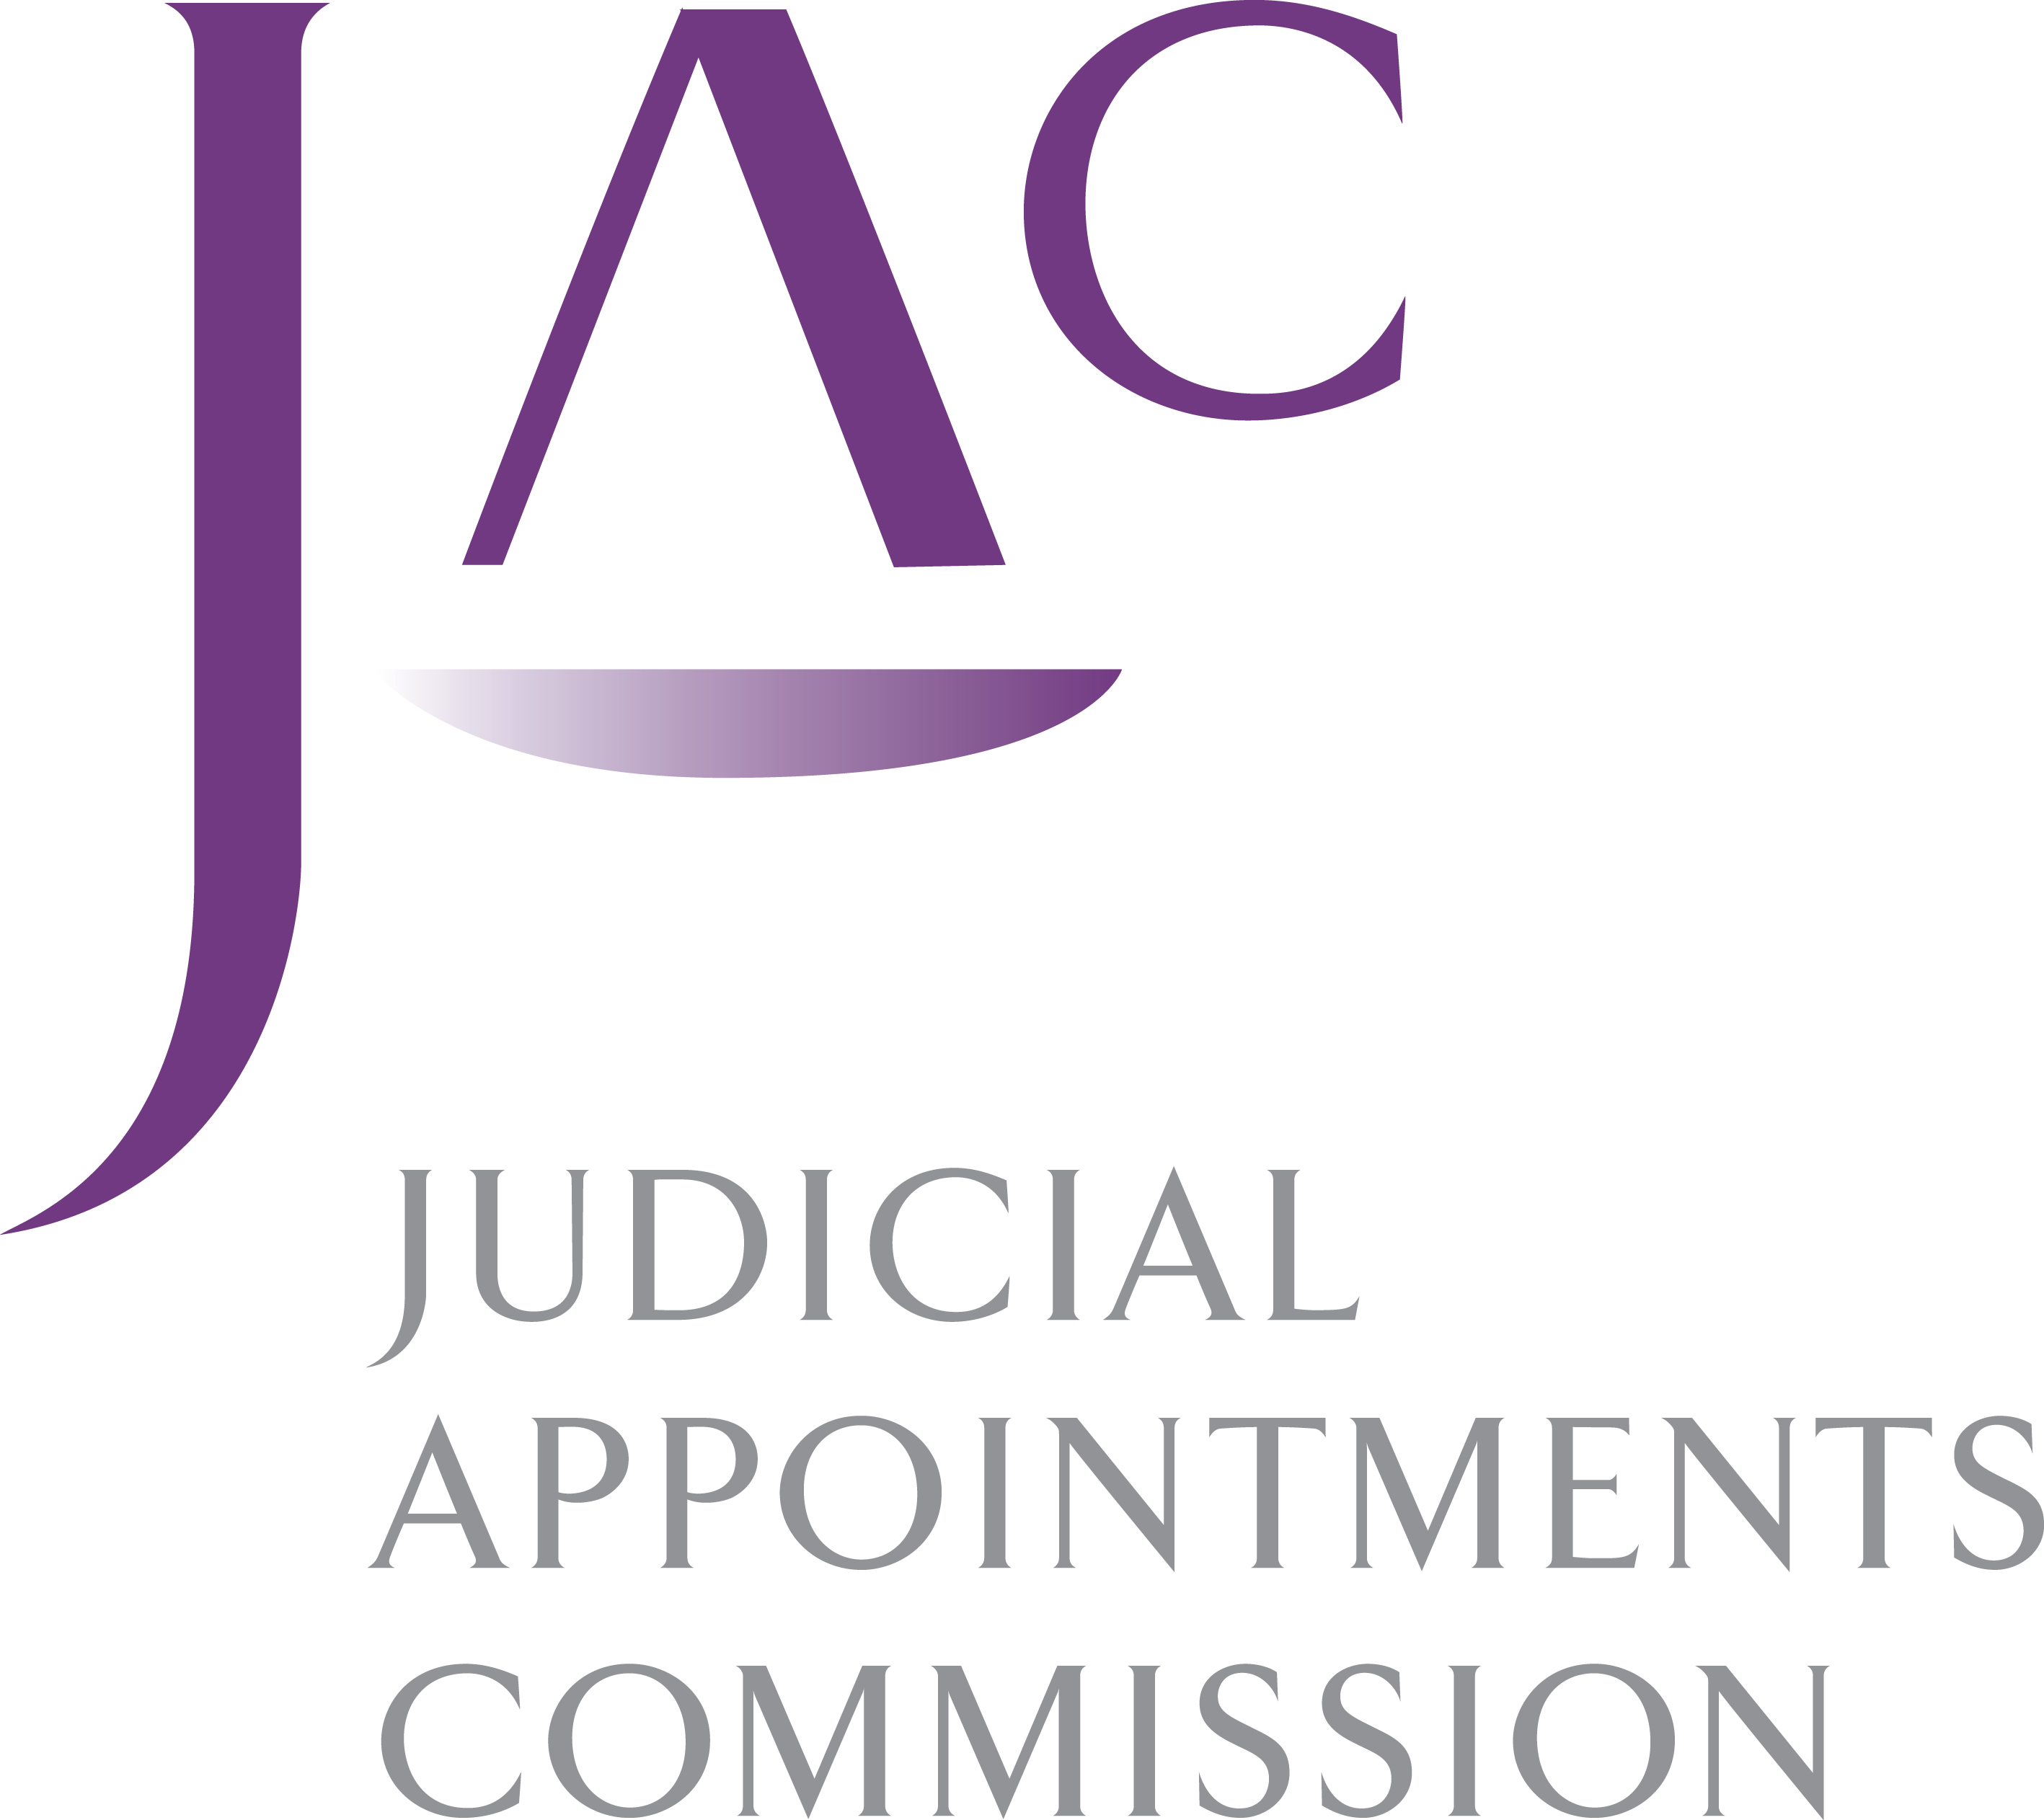 Judicial Appointments Commission